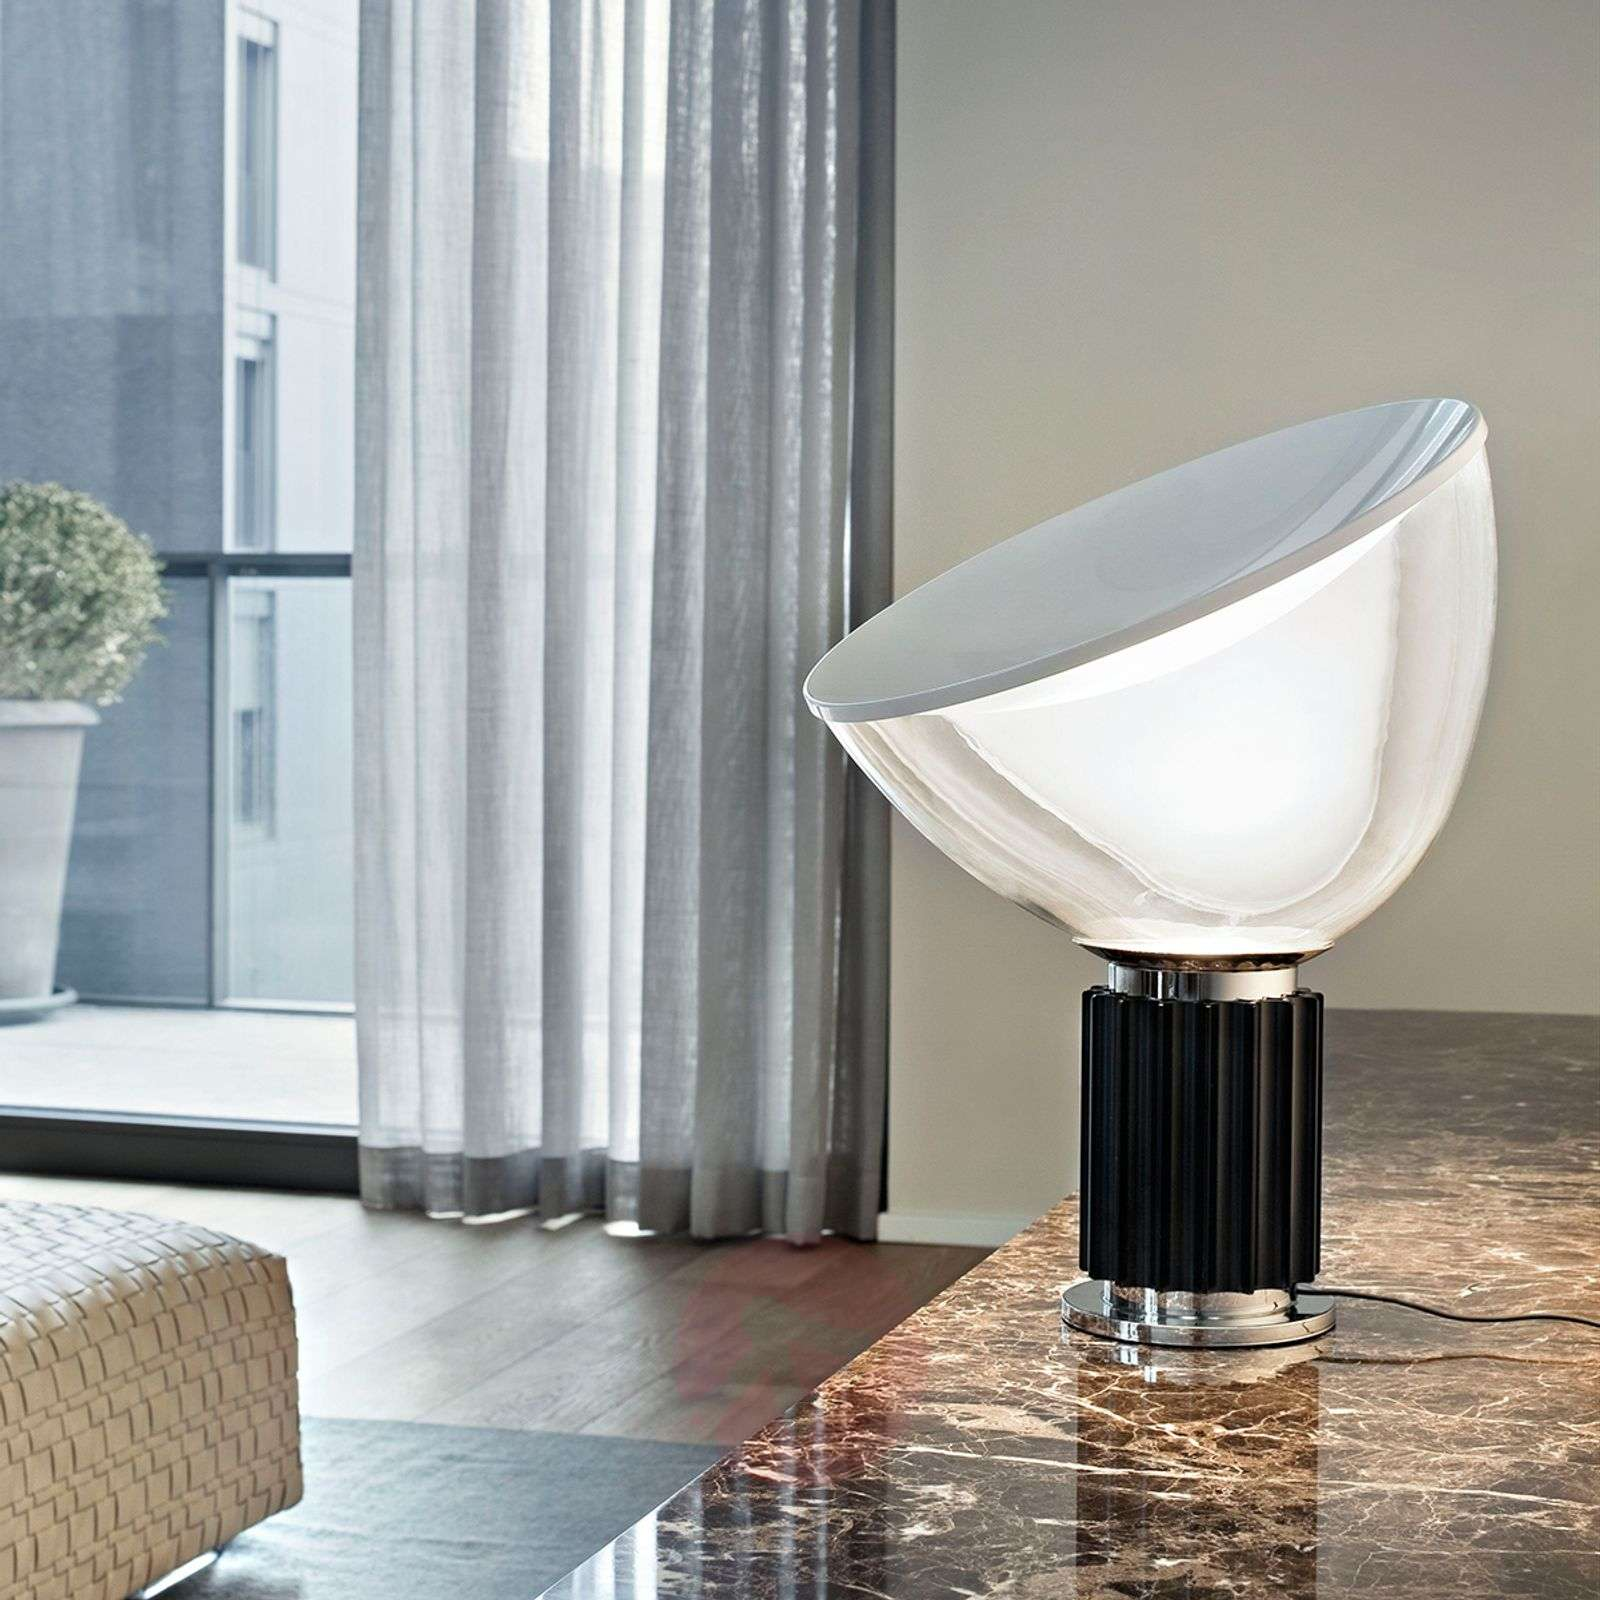 LED designer table lamp Taccia small-3510366X-03